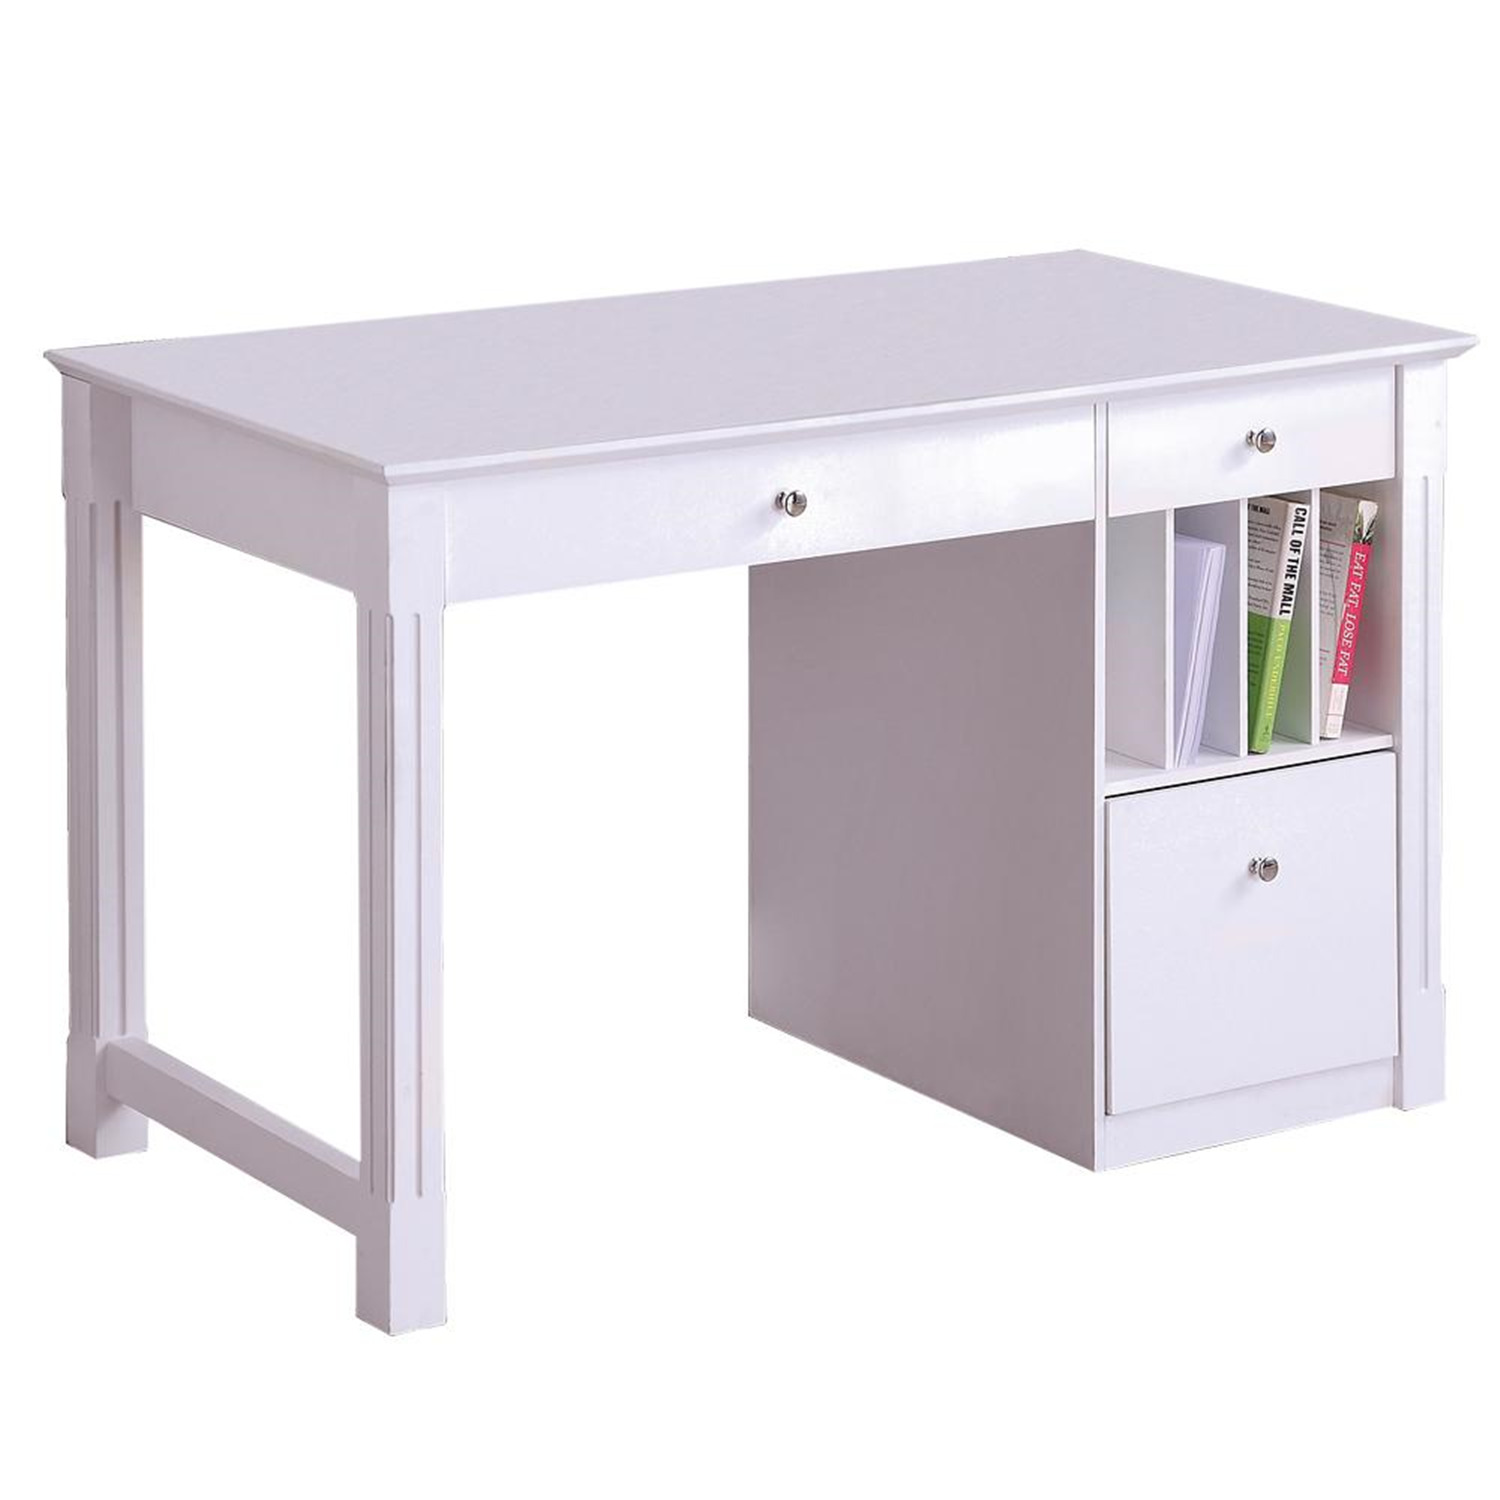 walker edison deluxe solid wood desk white by oj commerce dw48d30wh